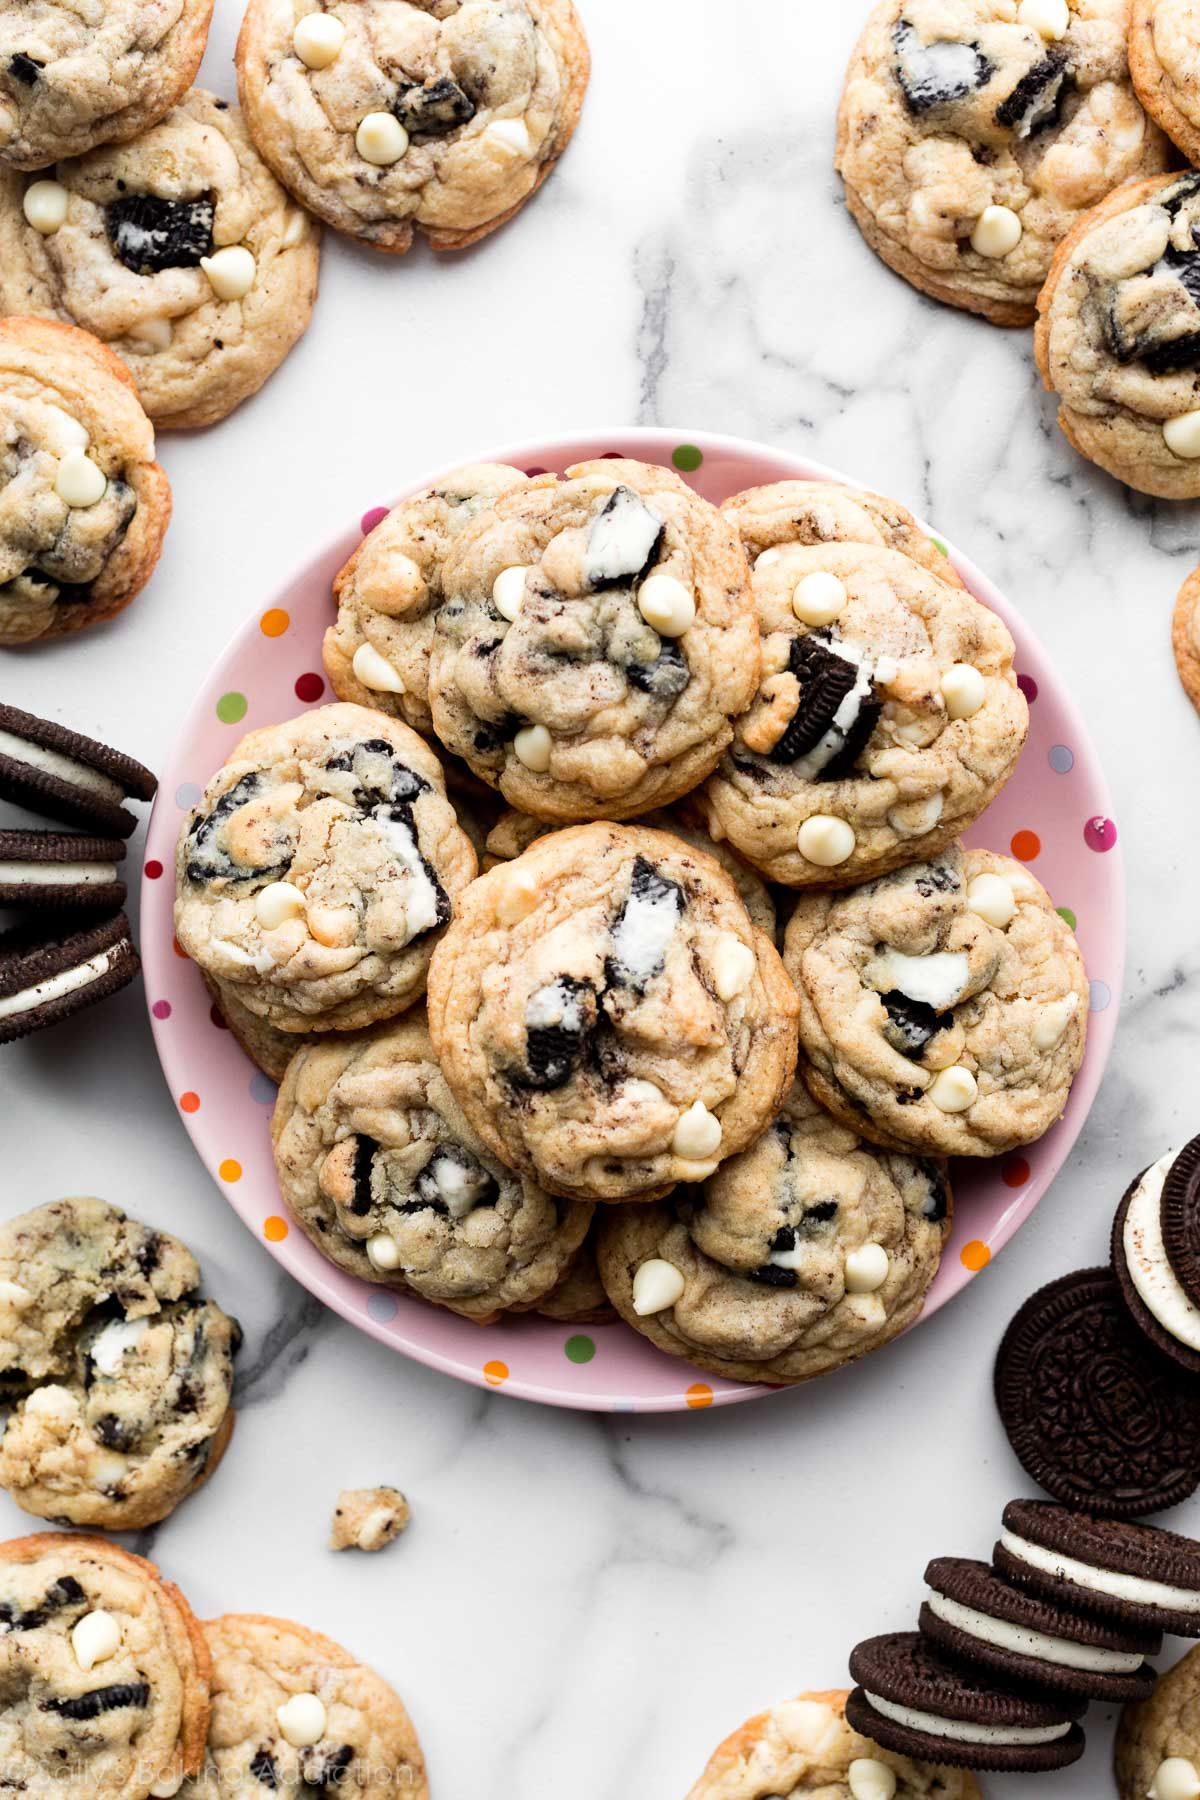 300+ That's the Way the Cookie Crumbles ideas in 2021 | cookie recipes,  food, dessert recipes